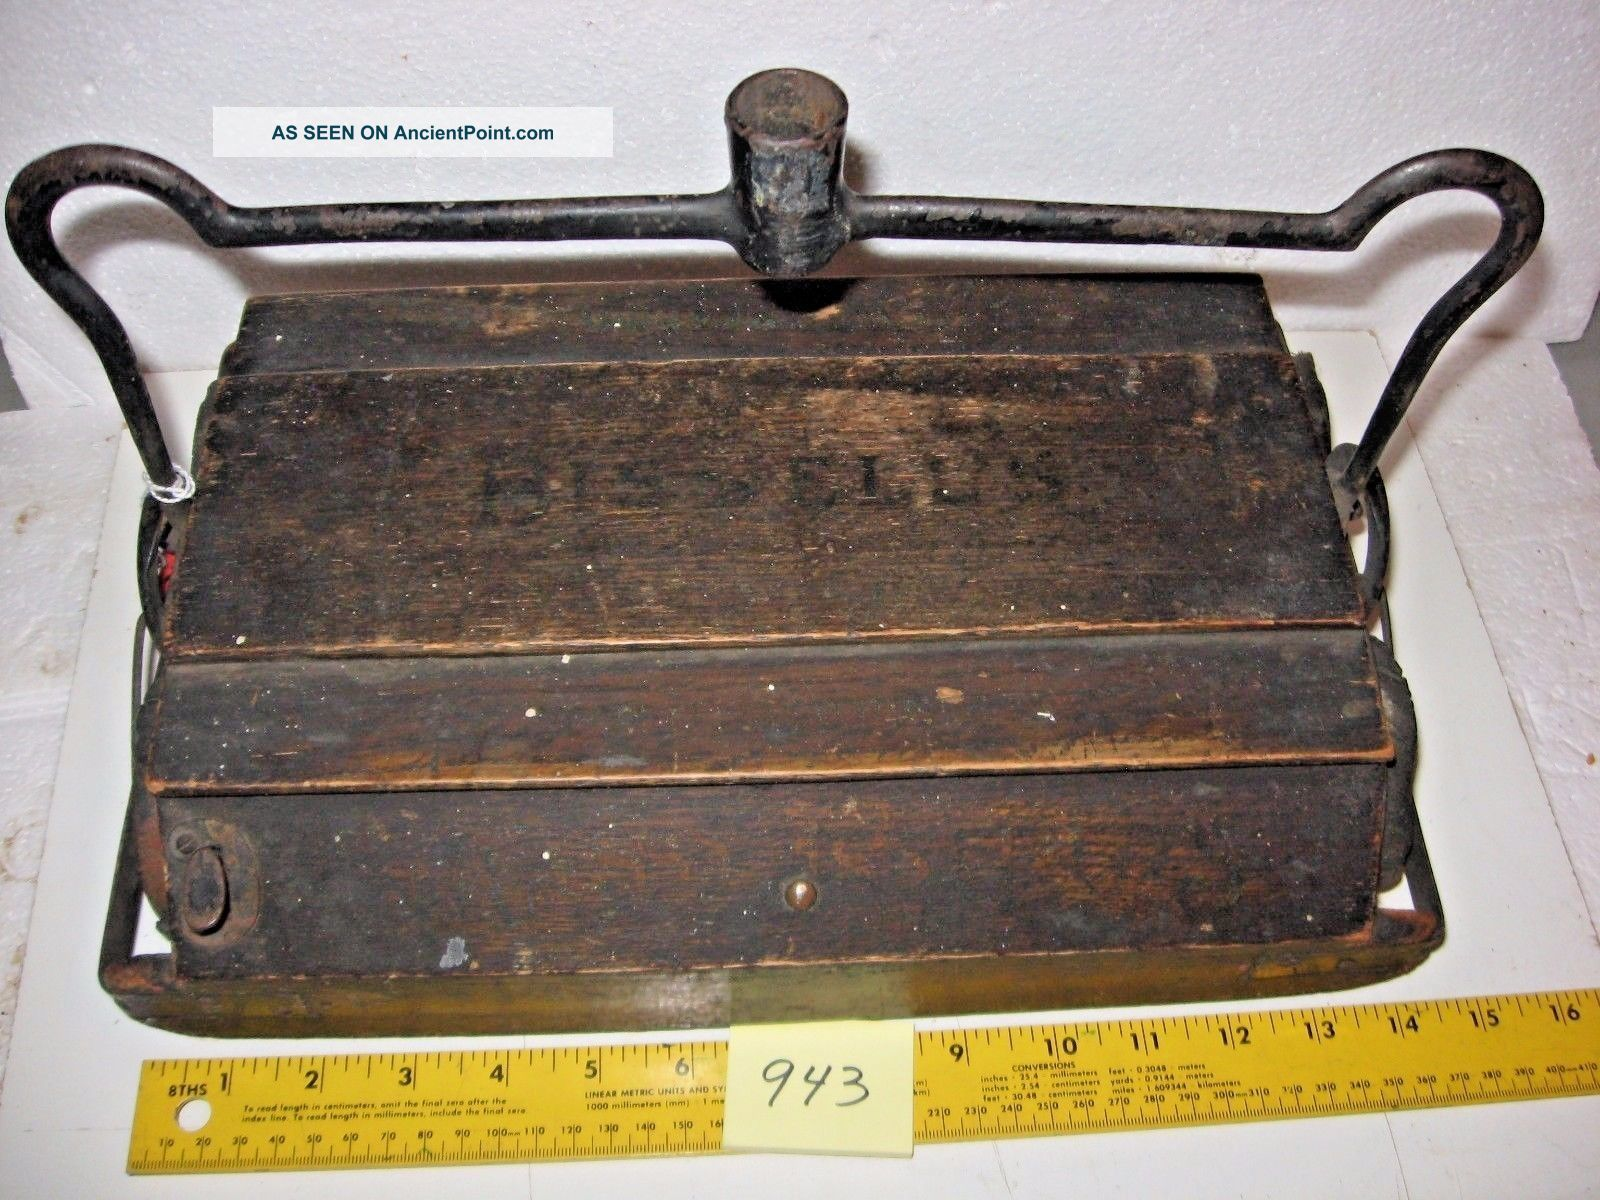 Bissell Cyco Bearing Grand Rapids Wood Floor Carpet Sweeper Vacuum Vintage.  Inv9 Other Antique Home & Hearth photo